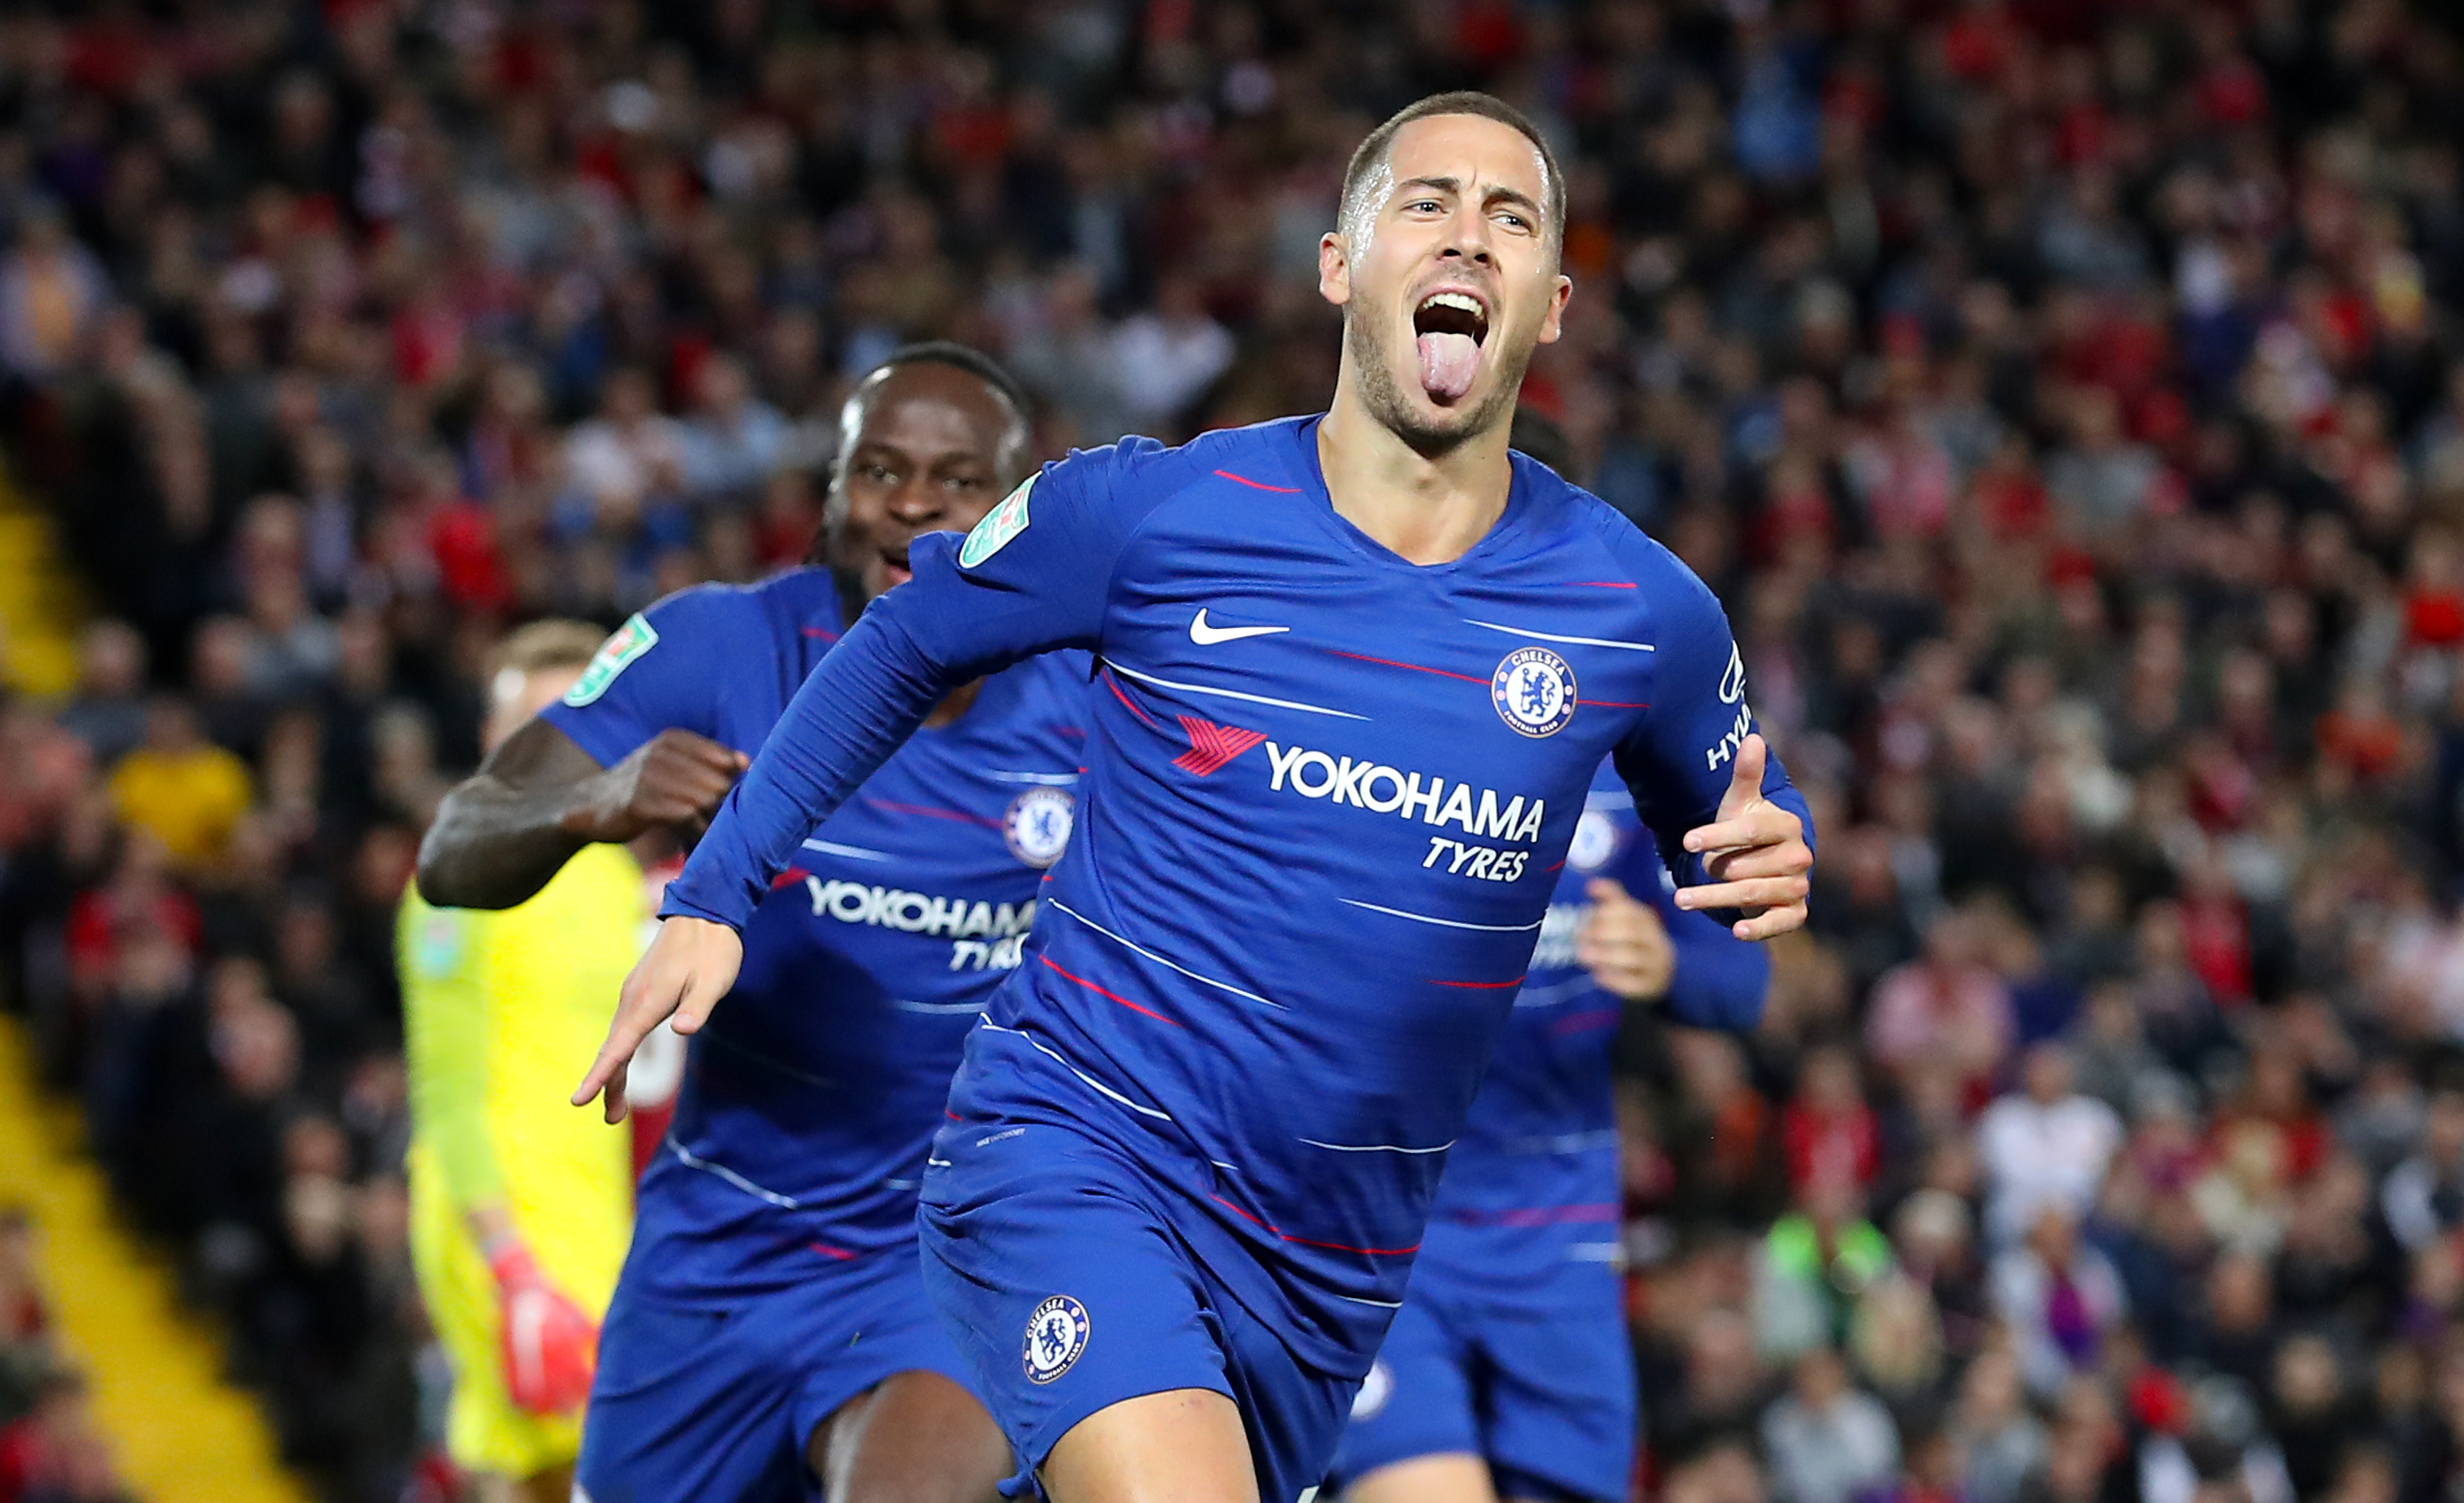 EPL: David Luiz enjoying life under Sarri